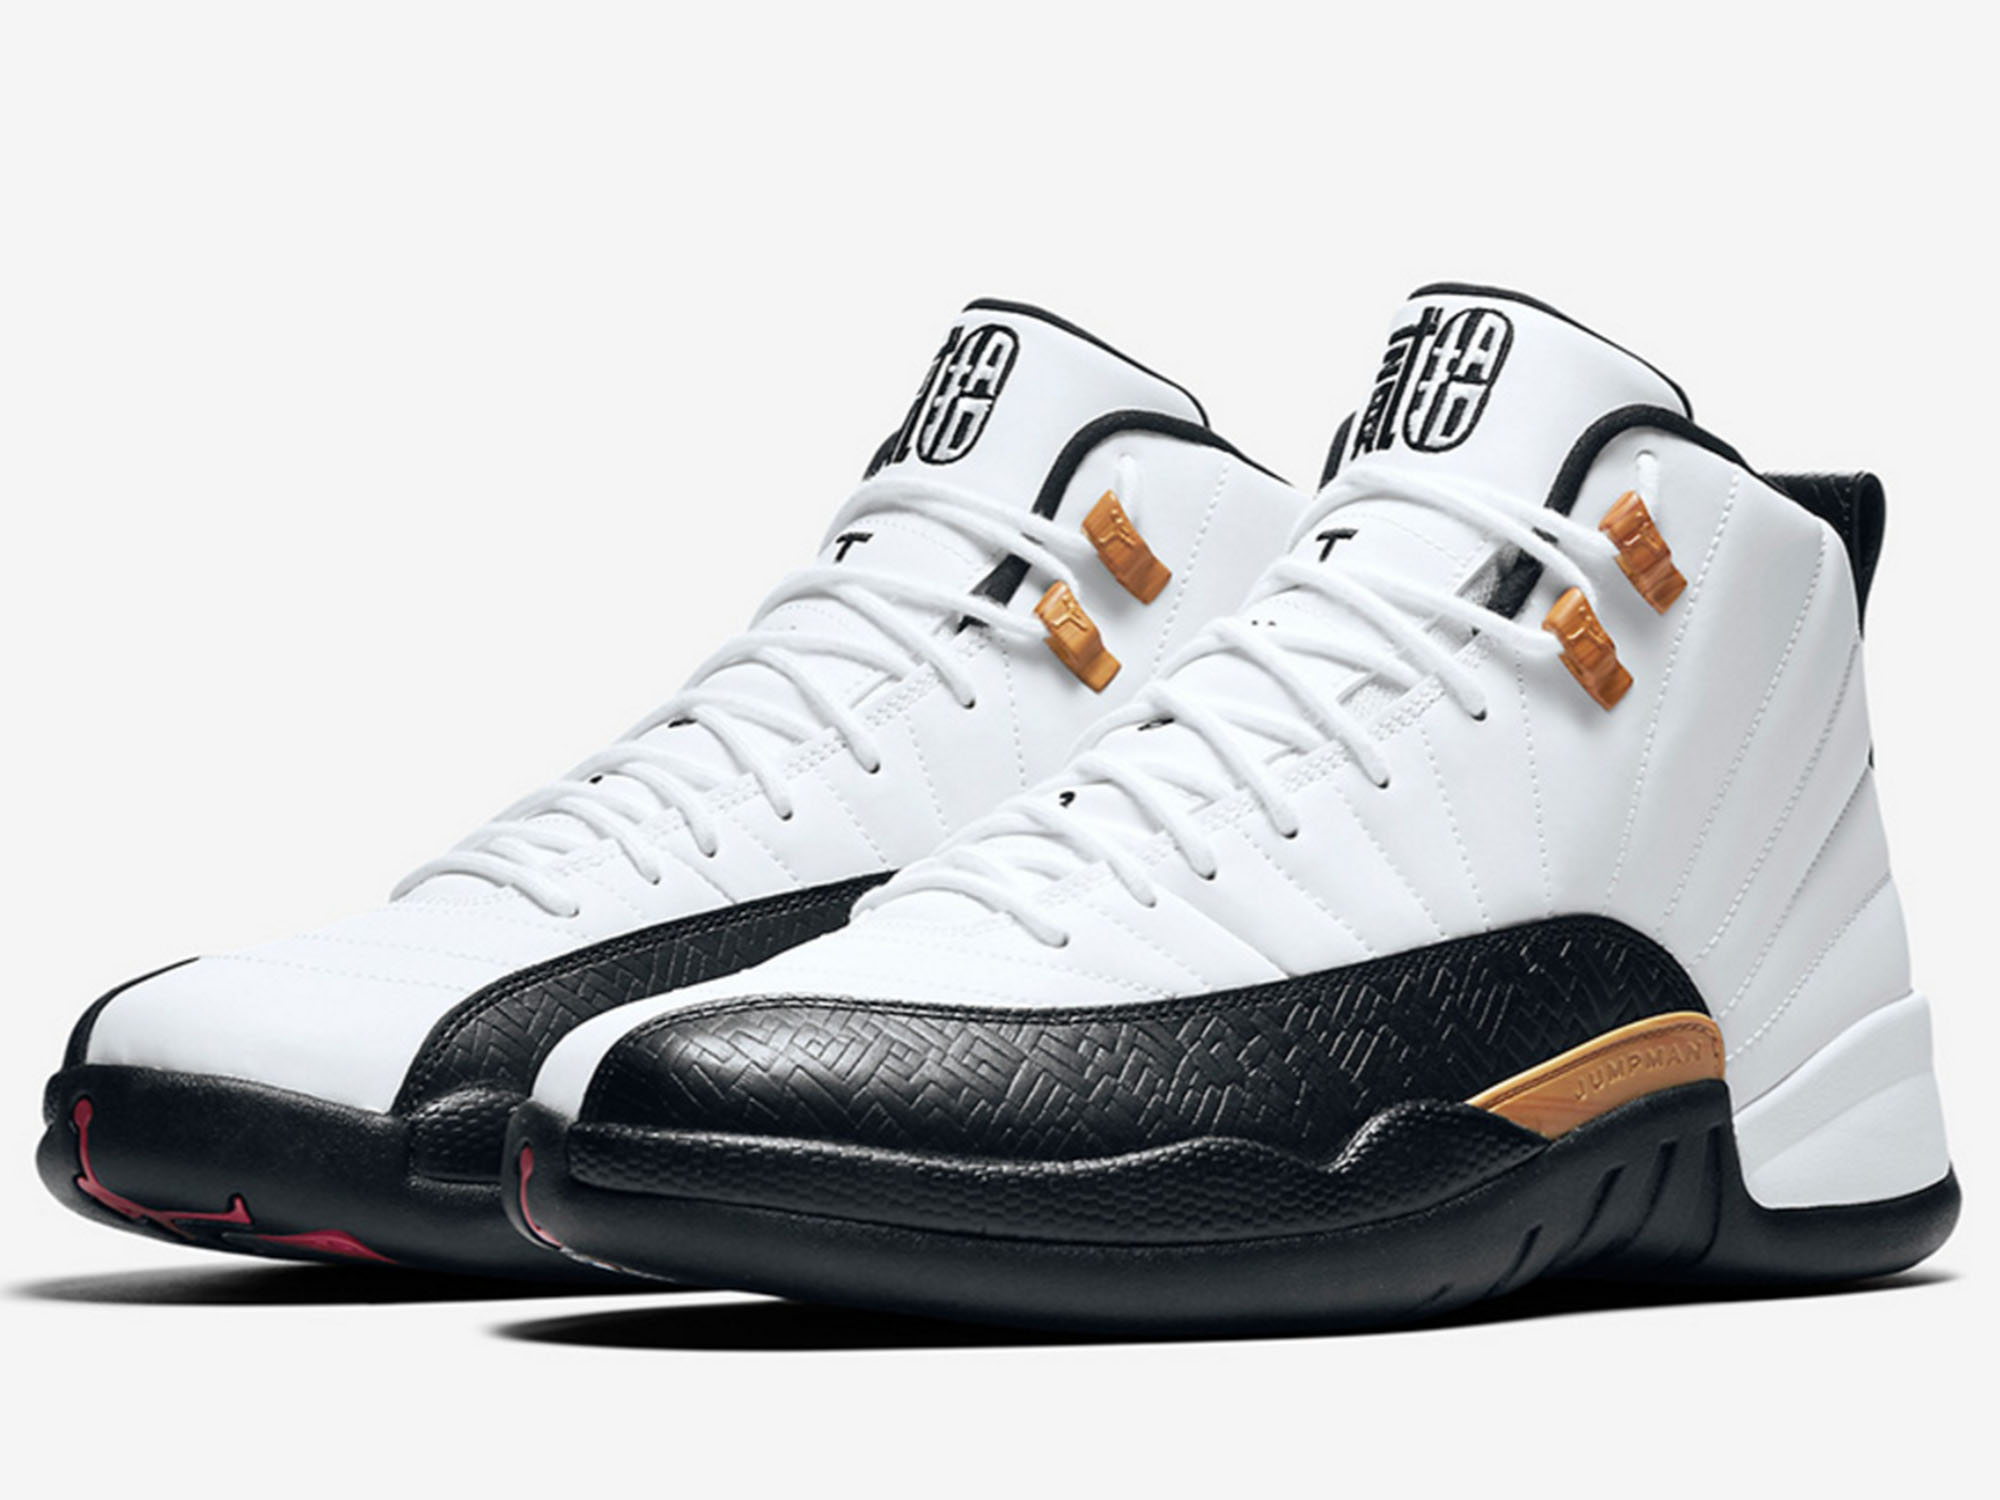 Release date for jordans in Brisbane